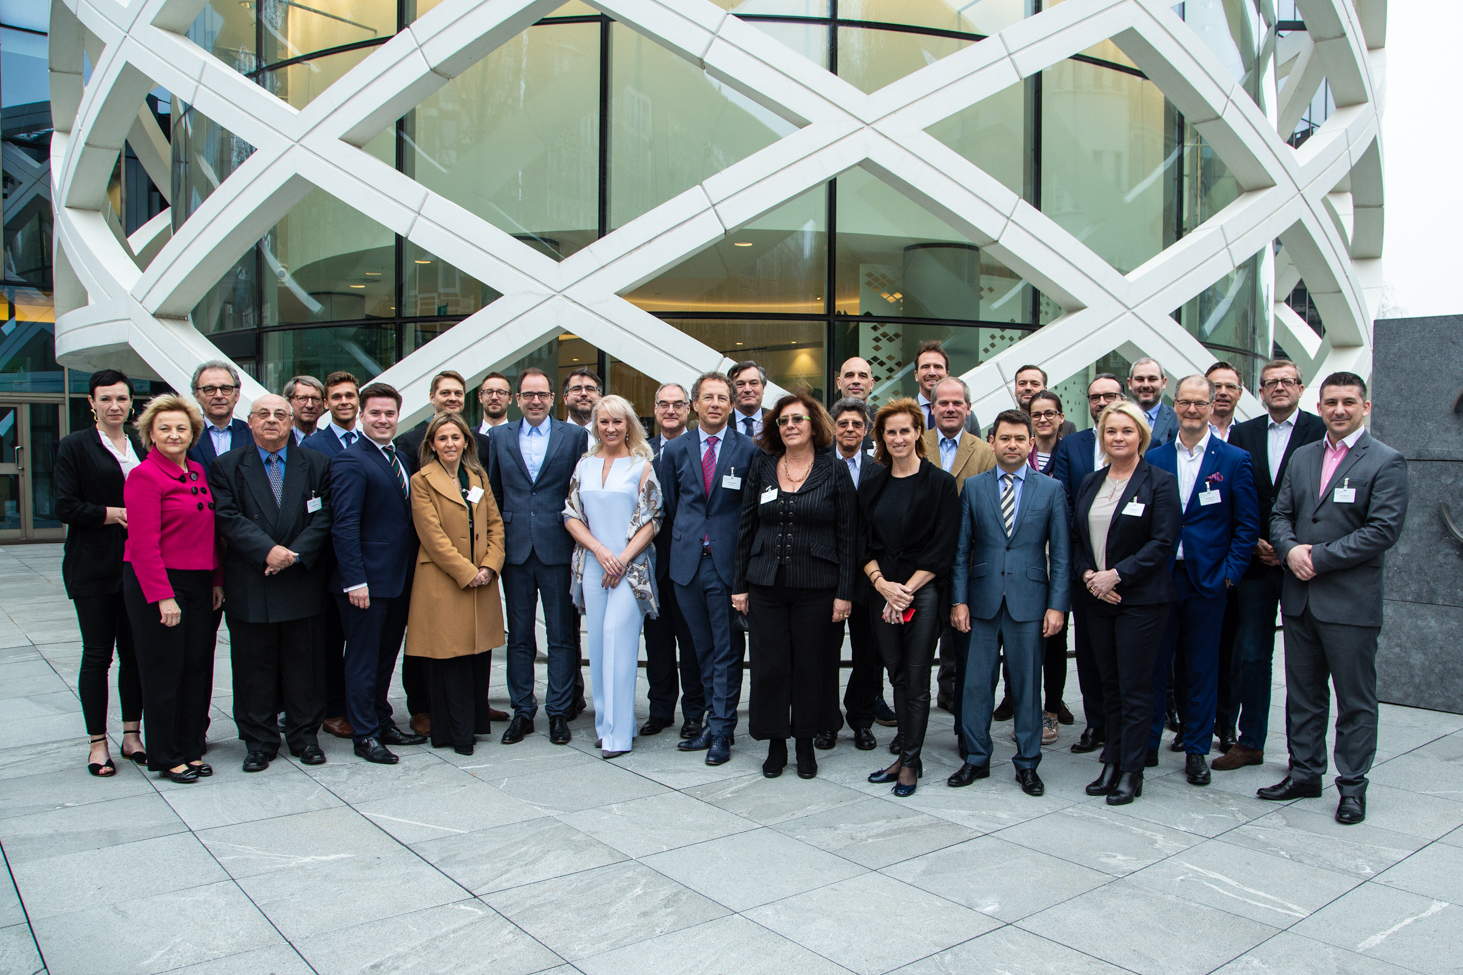 37TH GENERAL ASEMBLY OF THE EUROPEAN COMPANY LAWYERS ASSOCIATION